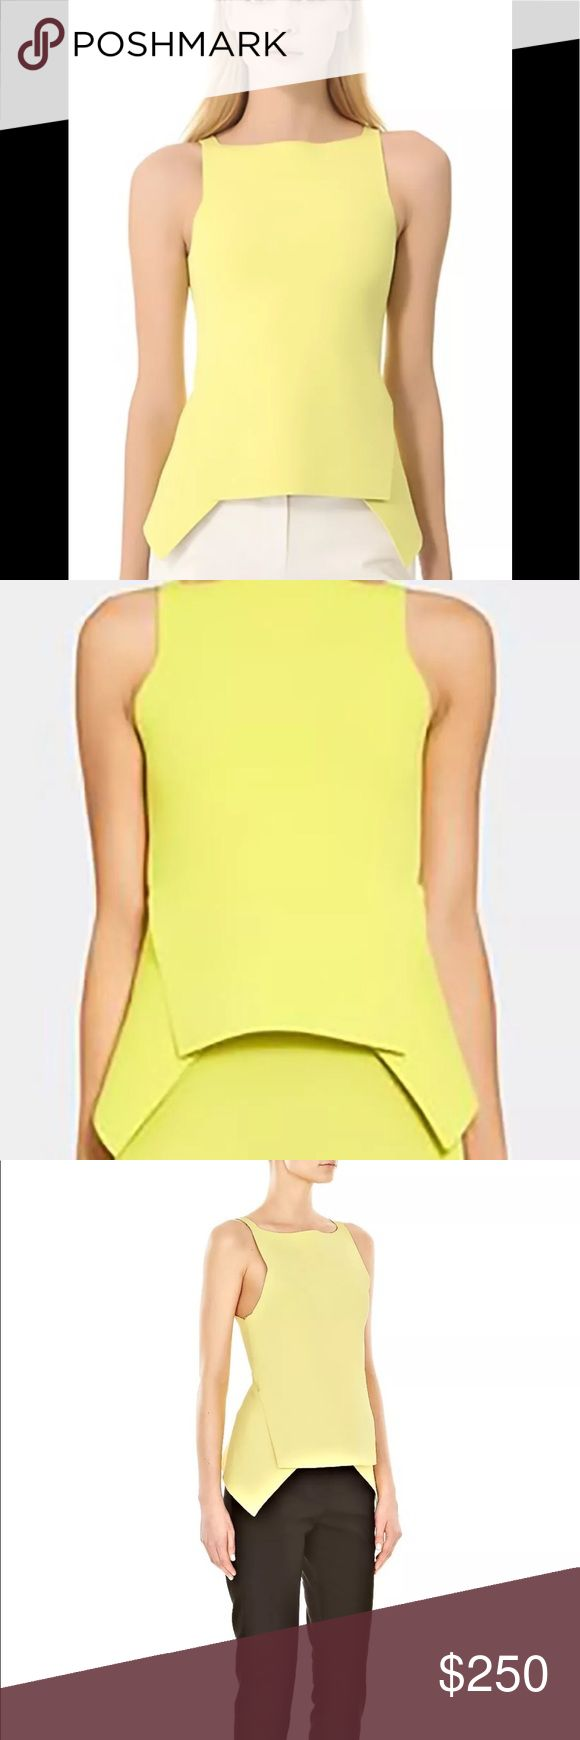 Alexander Wang  Top - Yellow Double-Faced size  M Alexander Wang Yellow Cropped Peplum Top used for a photo shoot only.  Crafted from supportive yet flexible double-faced stretch-jersey, Alexander Wang's chartreuse top is a cool way to work the peplum silhouette. Let the bold hue pop against black jeans, shorts or pencil skirts for instant style points! 